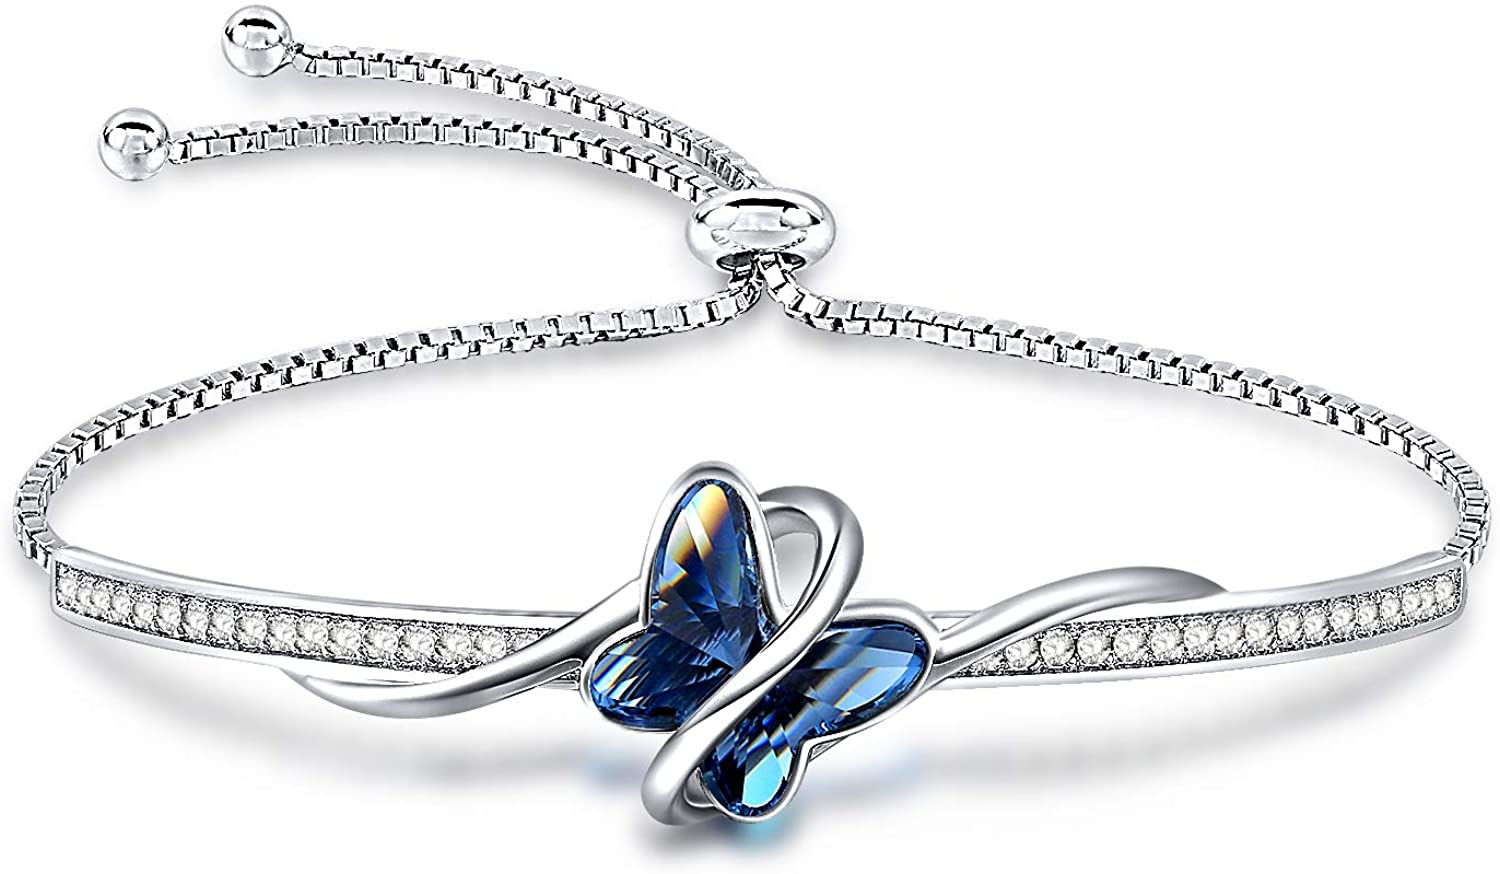 GEORGE · SMITH Blue Butterfly Crystal Bangle Bracelet for Women Silver Tone Adjustable Charms Bracelet with Crystals from Swarovski Girlfriend Birthday Jewelry with Elegant Gift Box